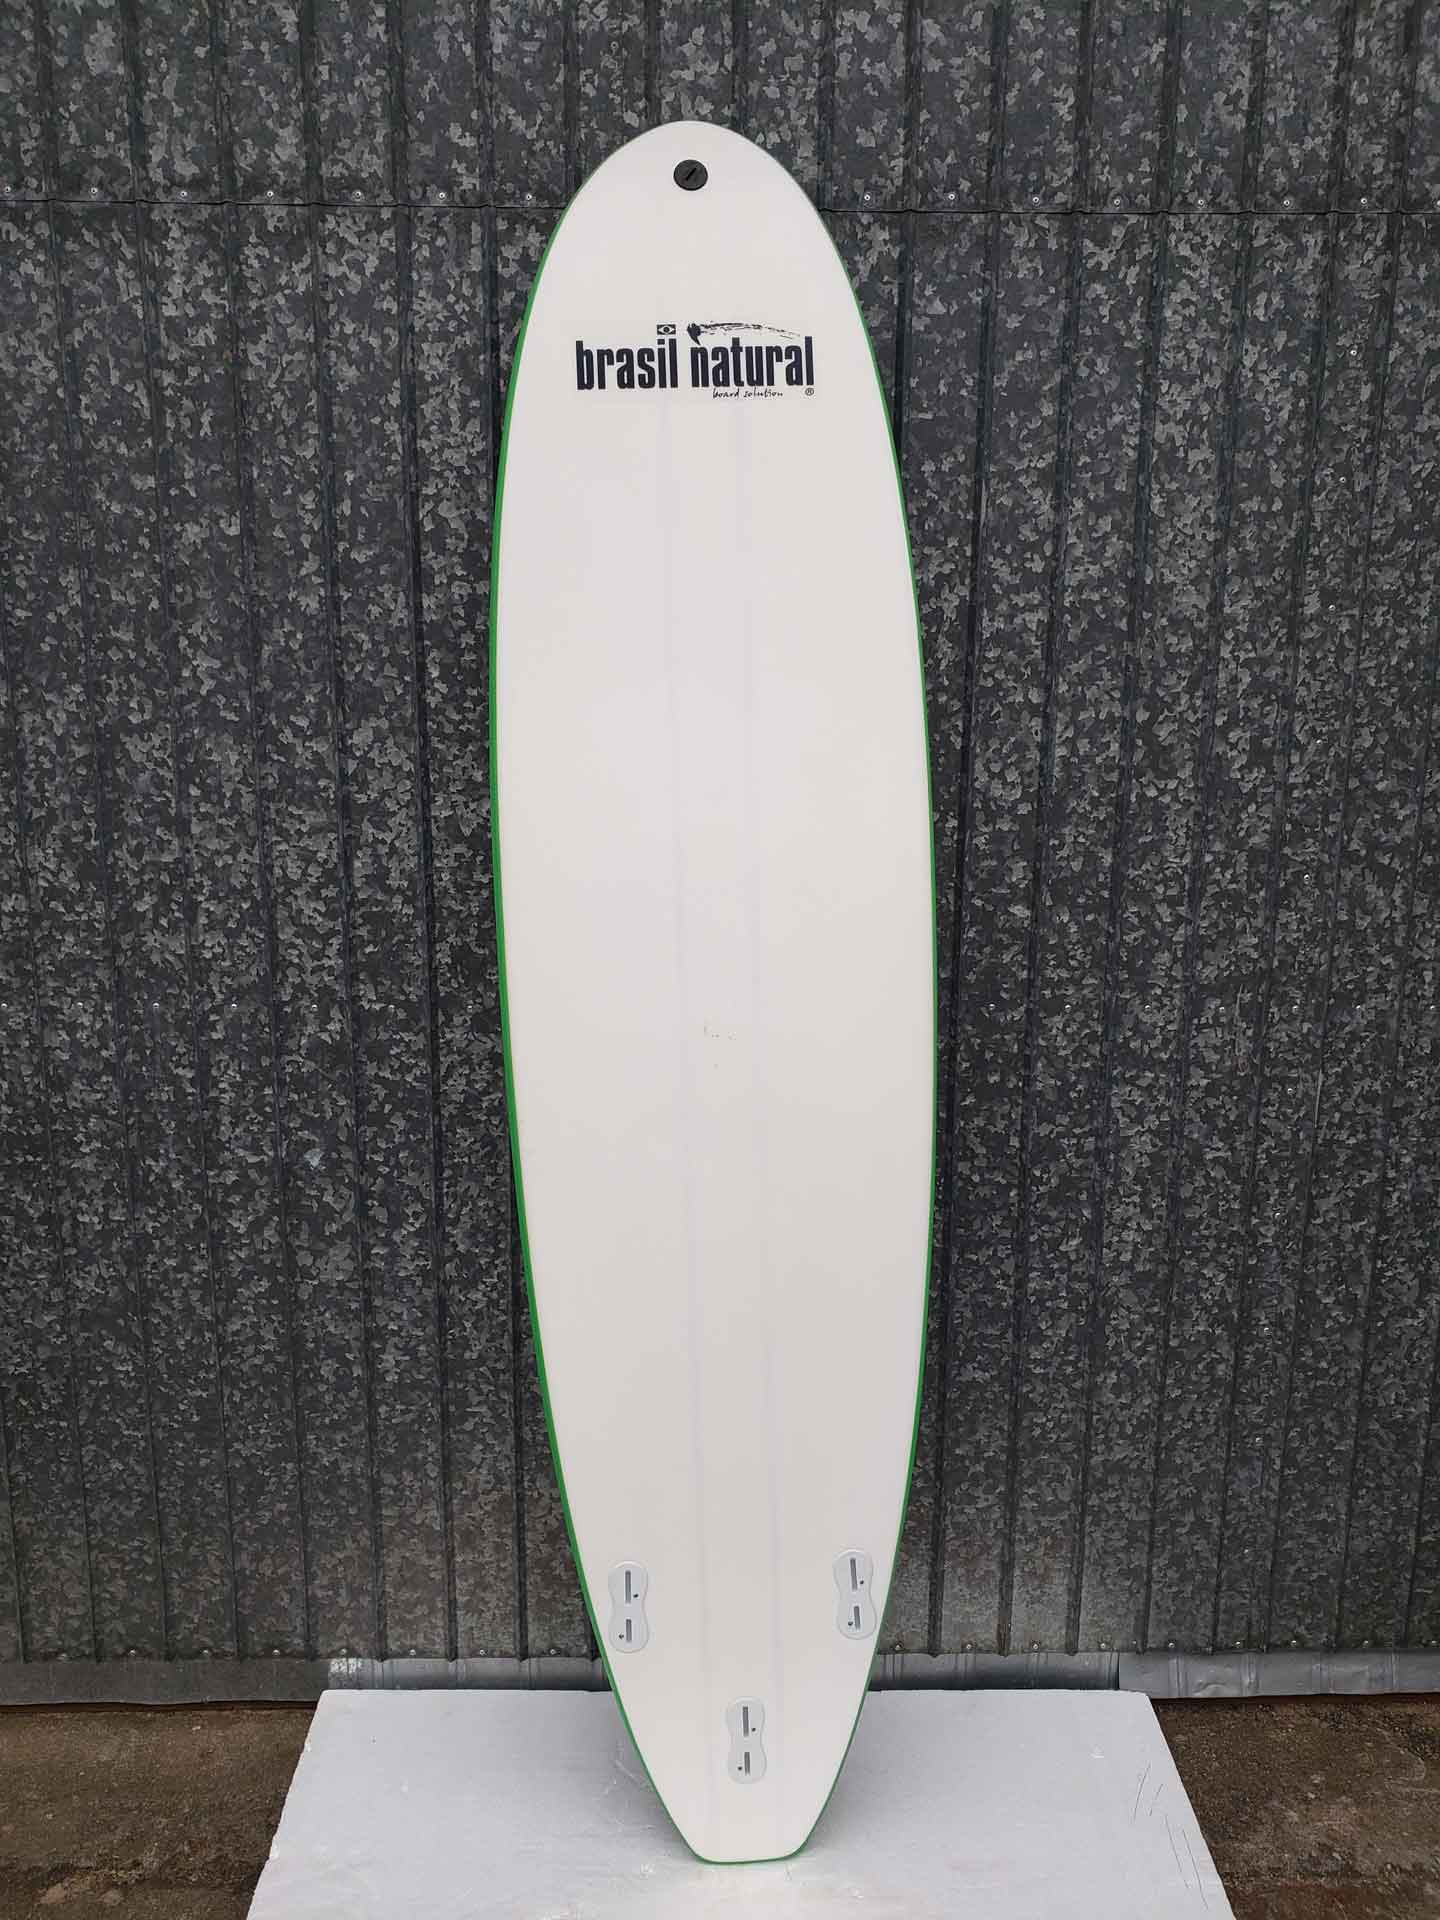 Prancha de surf FUN 7.2 + kit surf - outlet 11